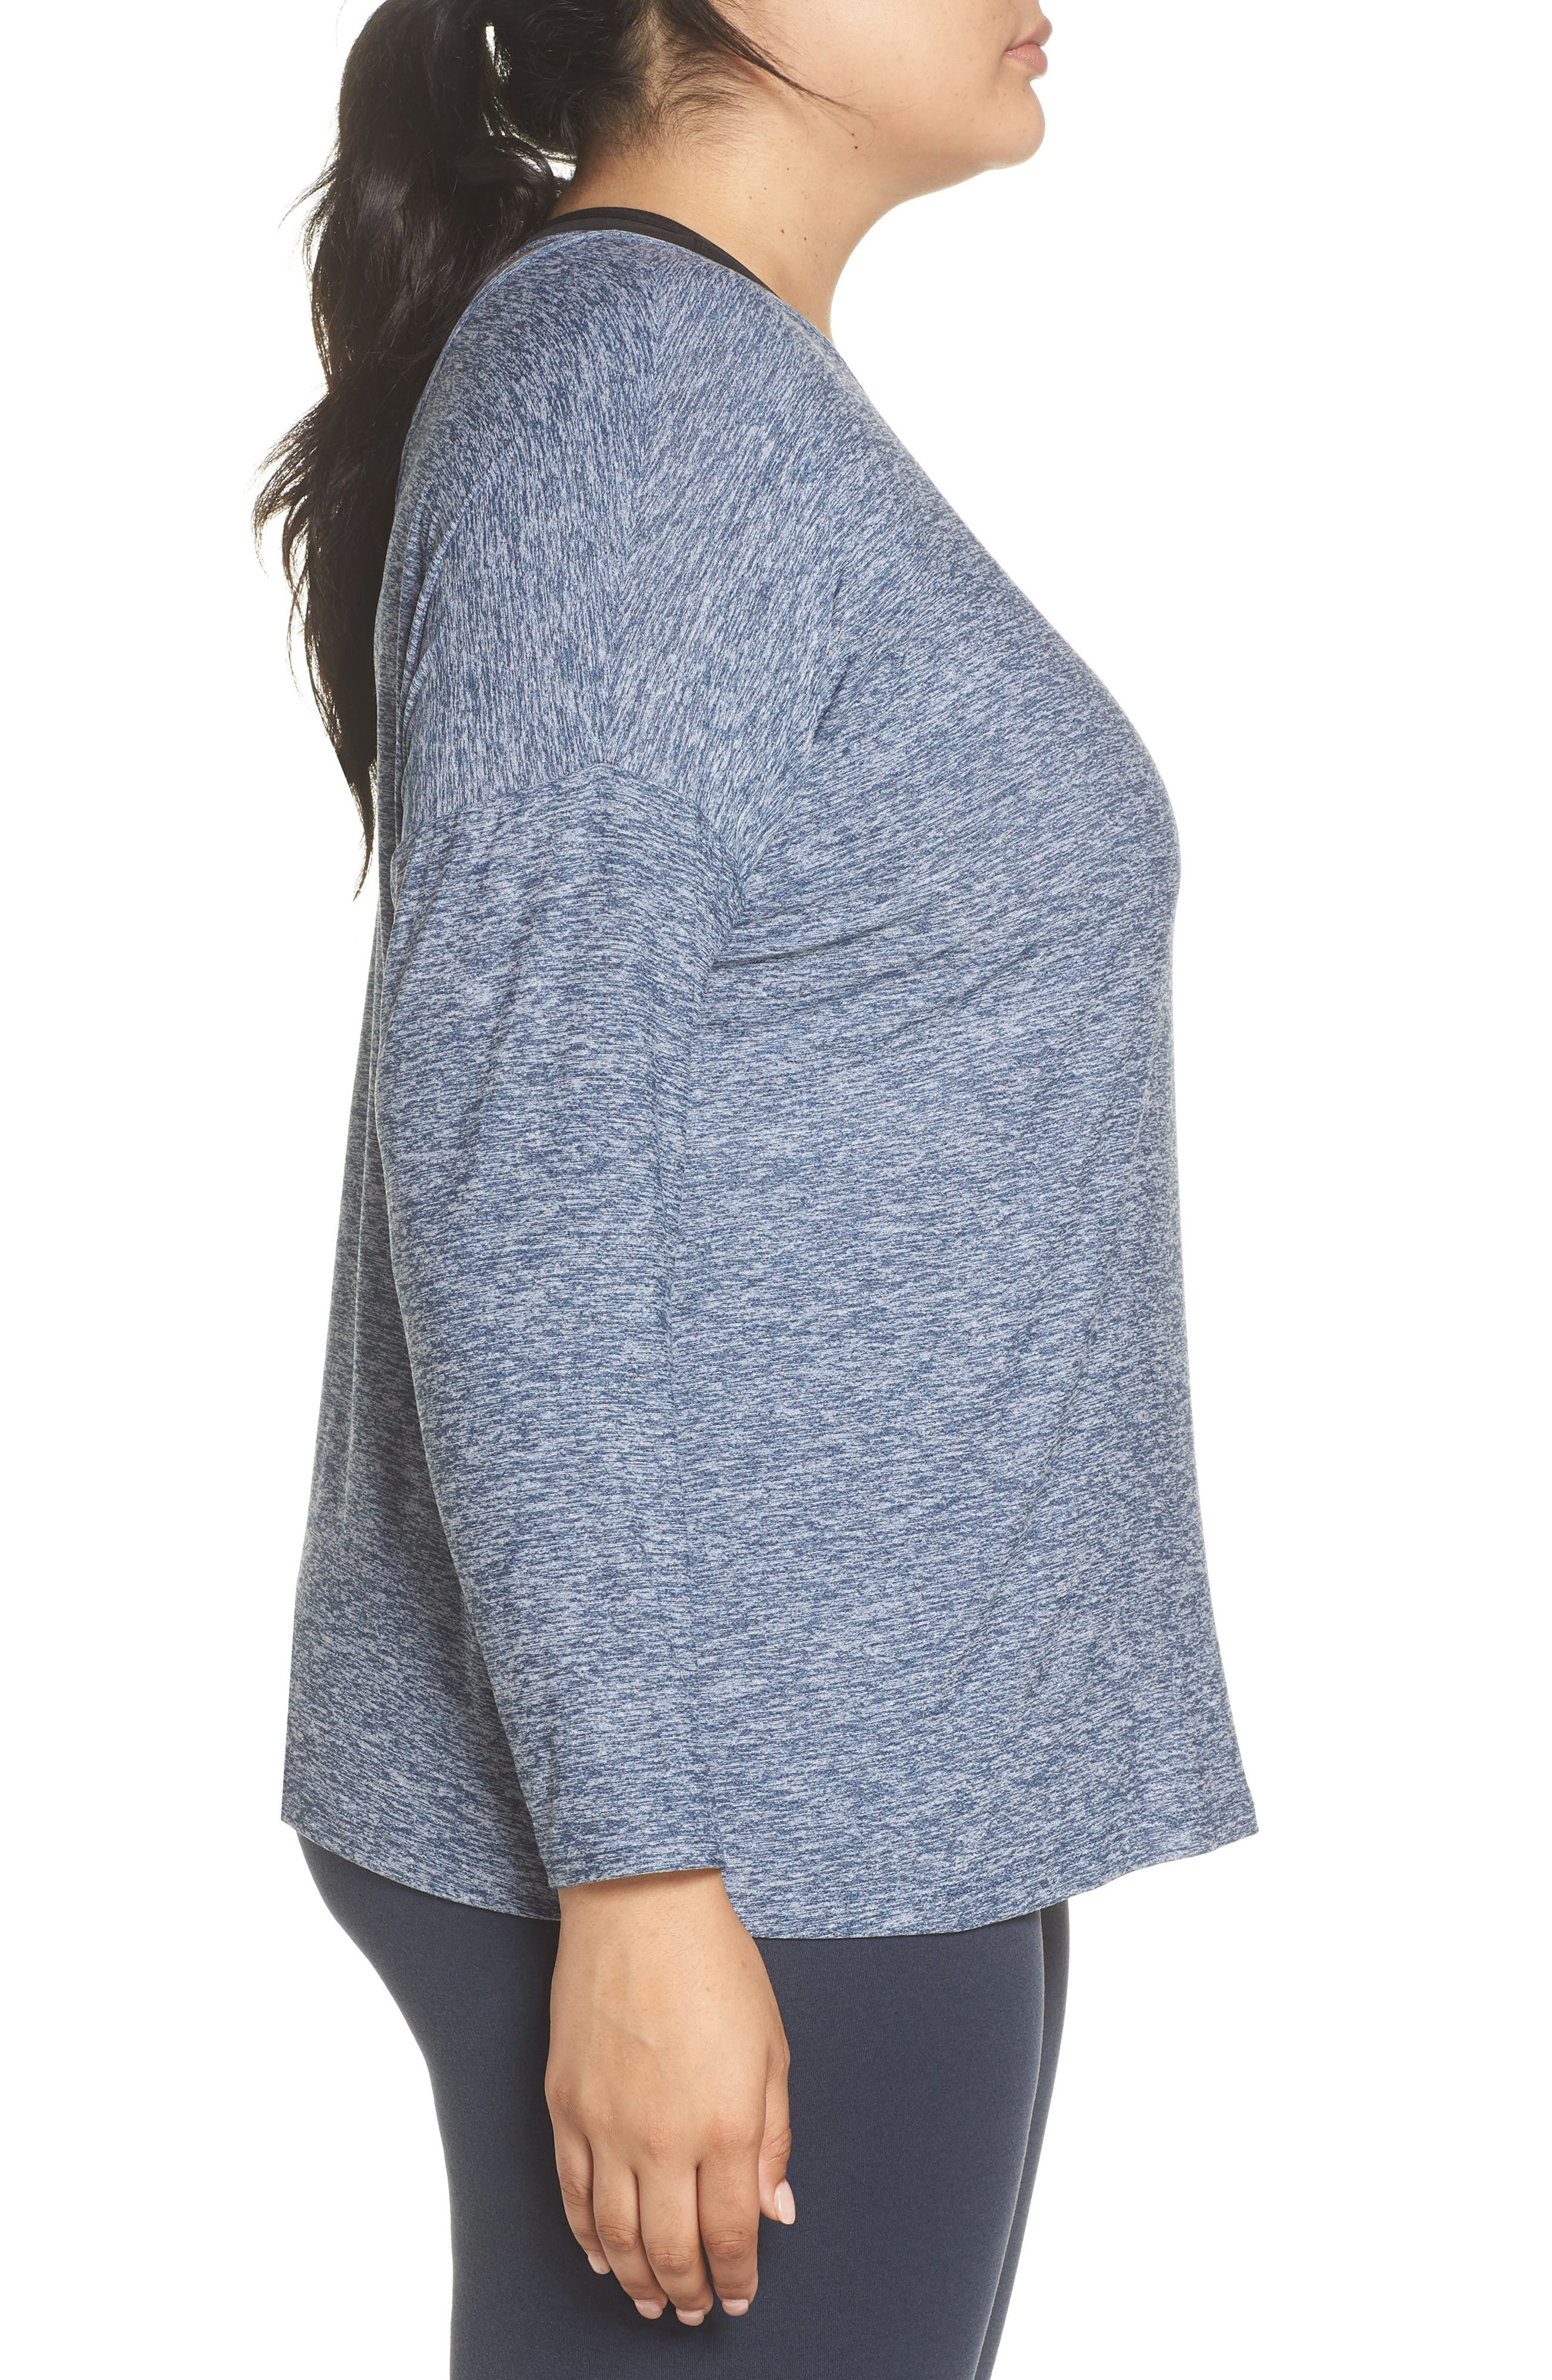 Weekend Traveler Pullover,                             Alternate thumbnail 4, color,                             White/ Outlaw Navy